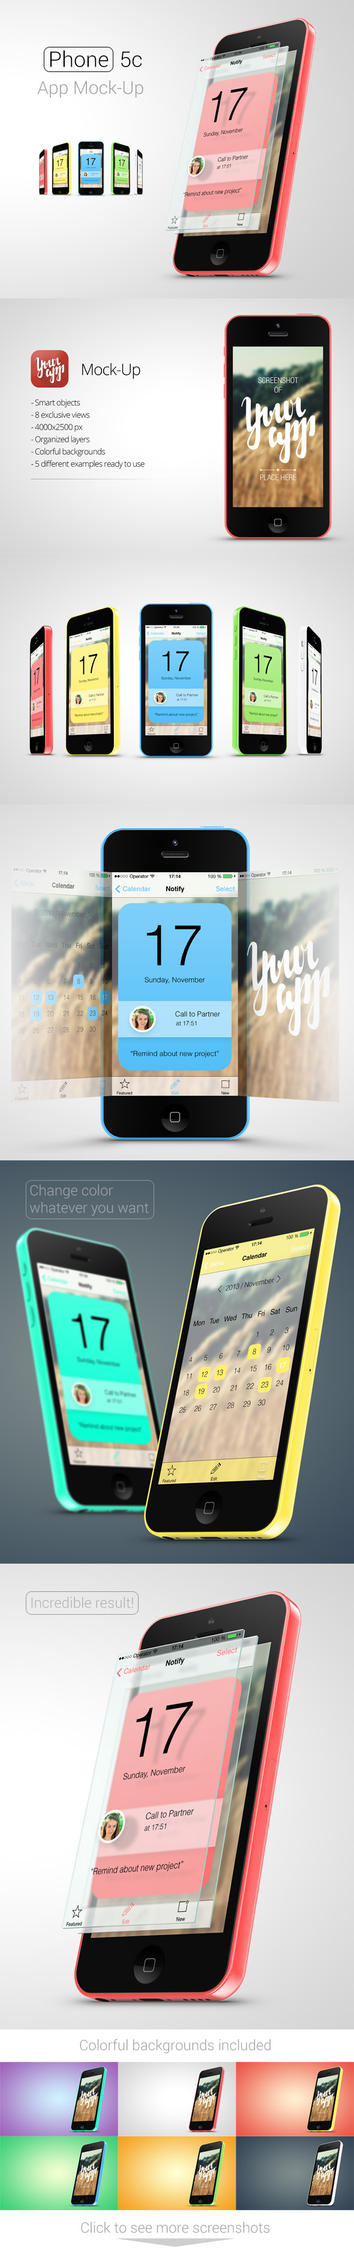 Phone 5c App Mock-Up by kotulsky